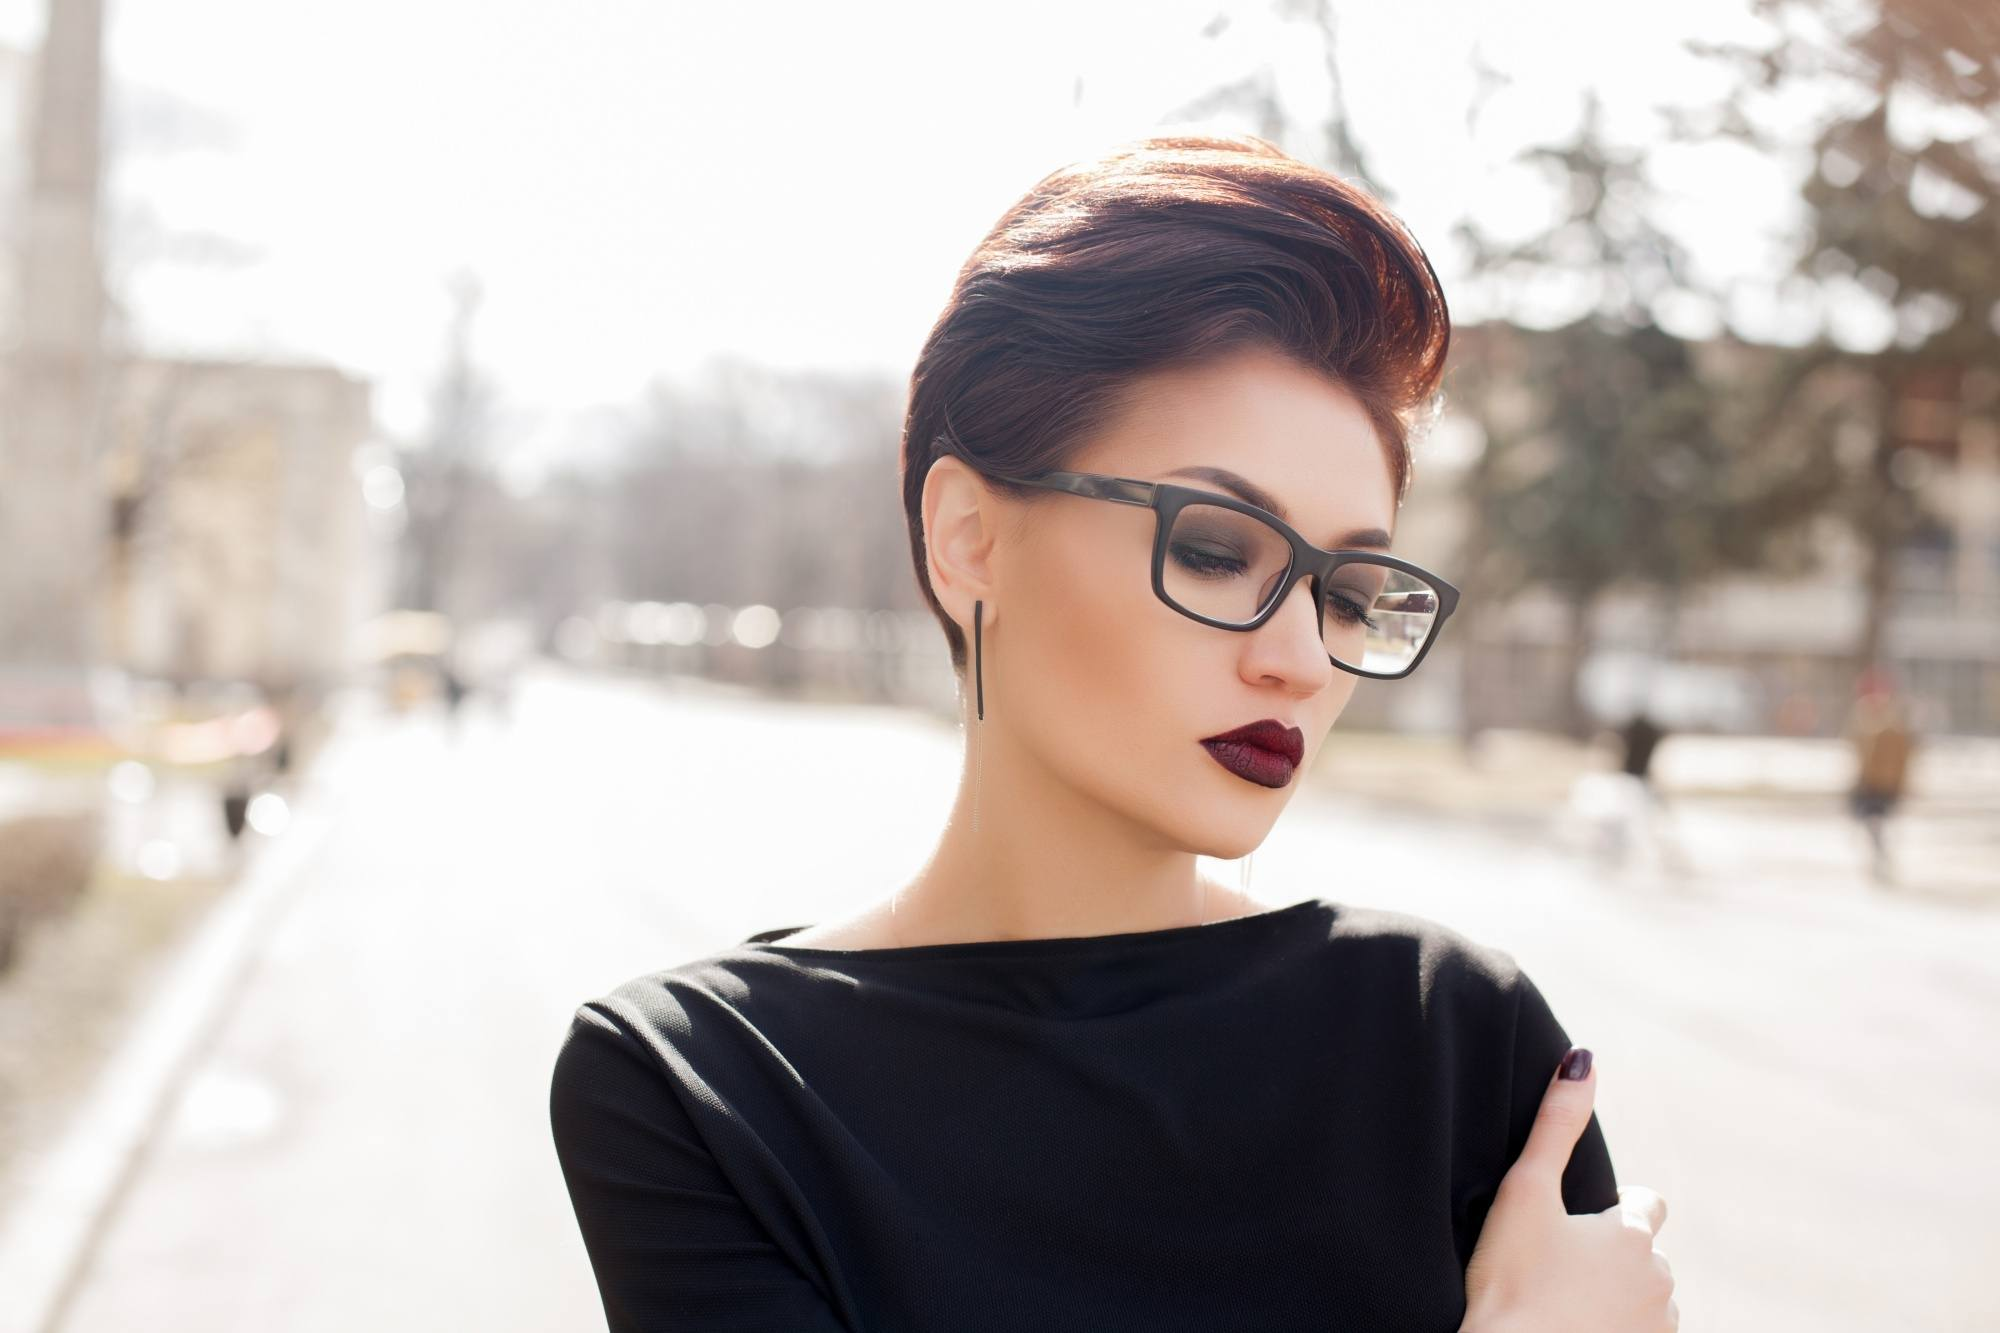 Anti-dandruff shampoo: Closeup shot of a woman with dark pixie cut hair wearing eyeglasses and black top outdoors